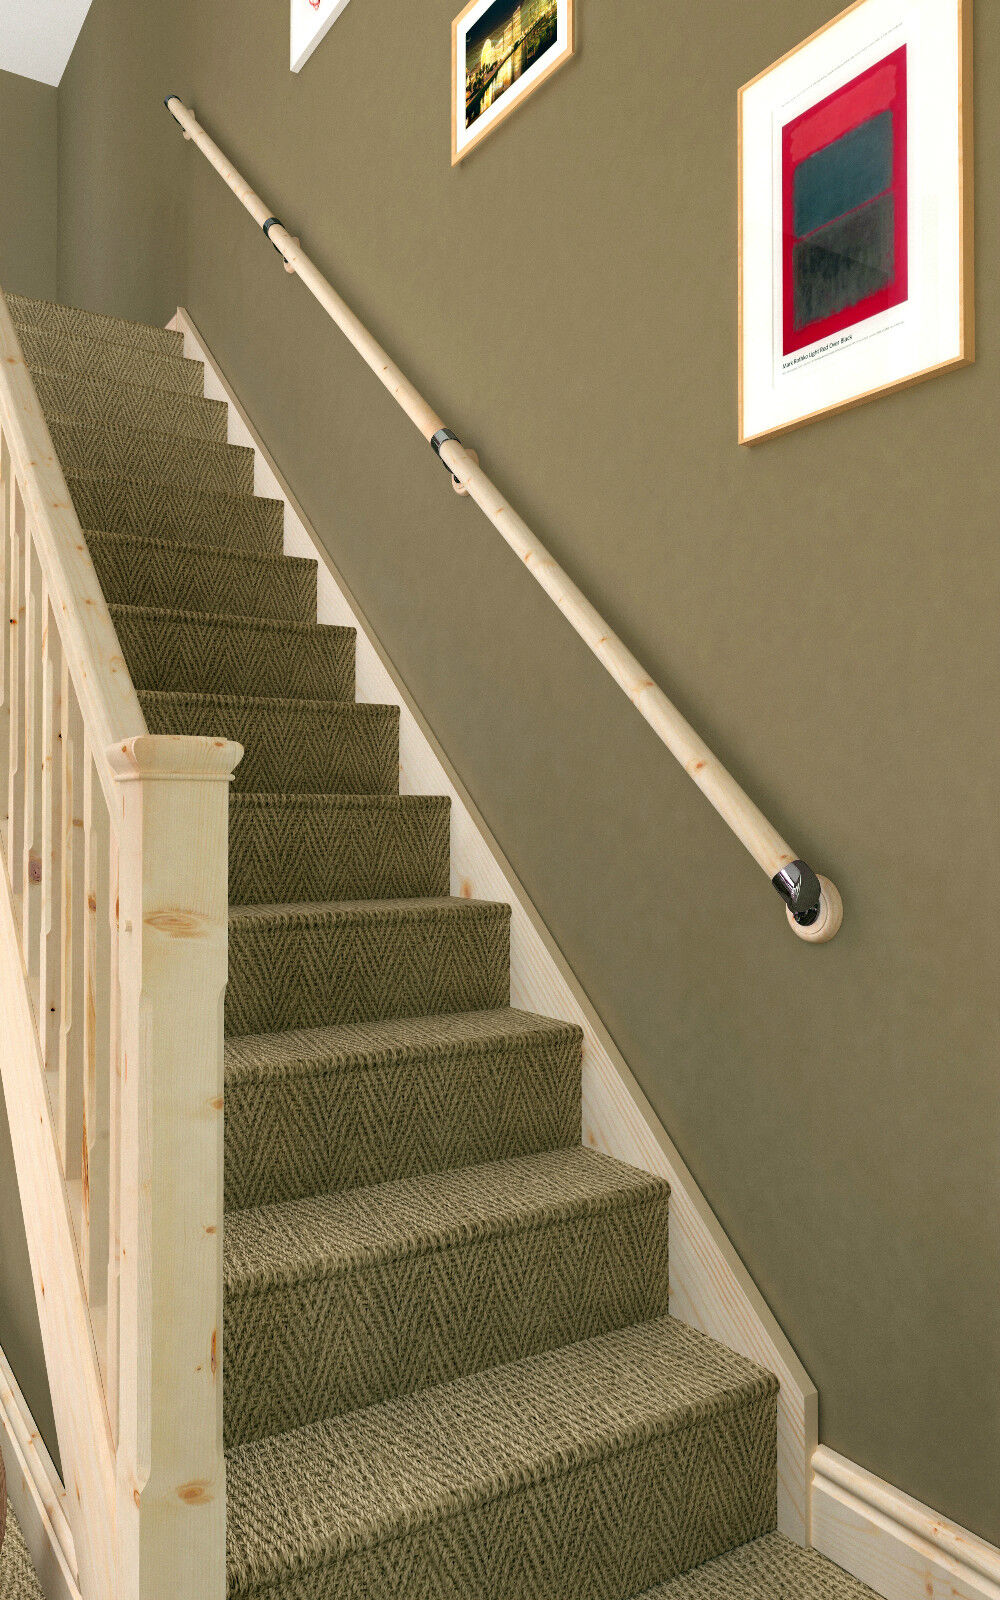 Axxys Pine Wall Mounted Handrail Set with Brushed Nickel ...